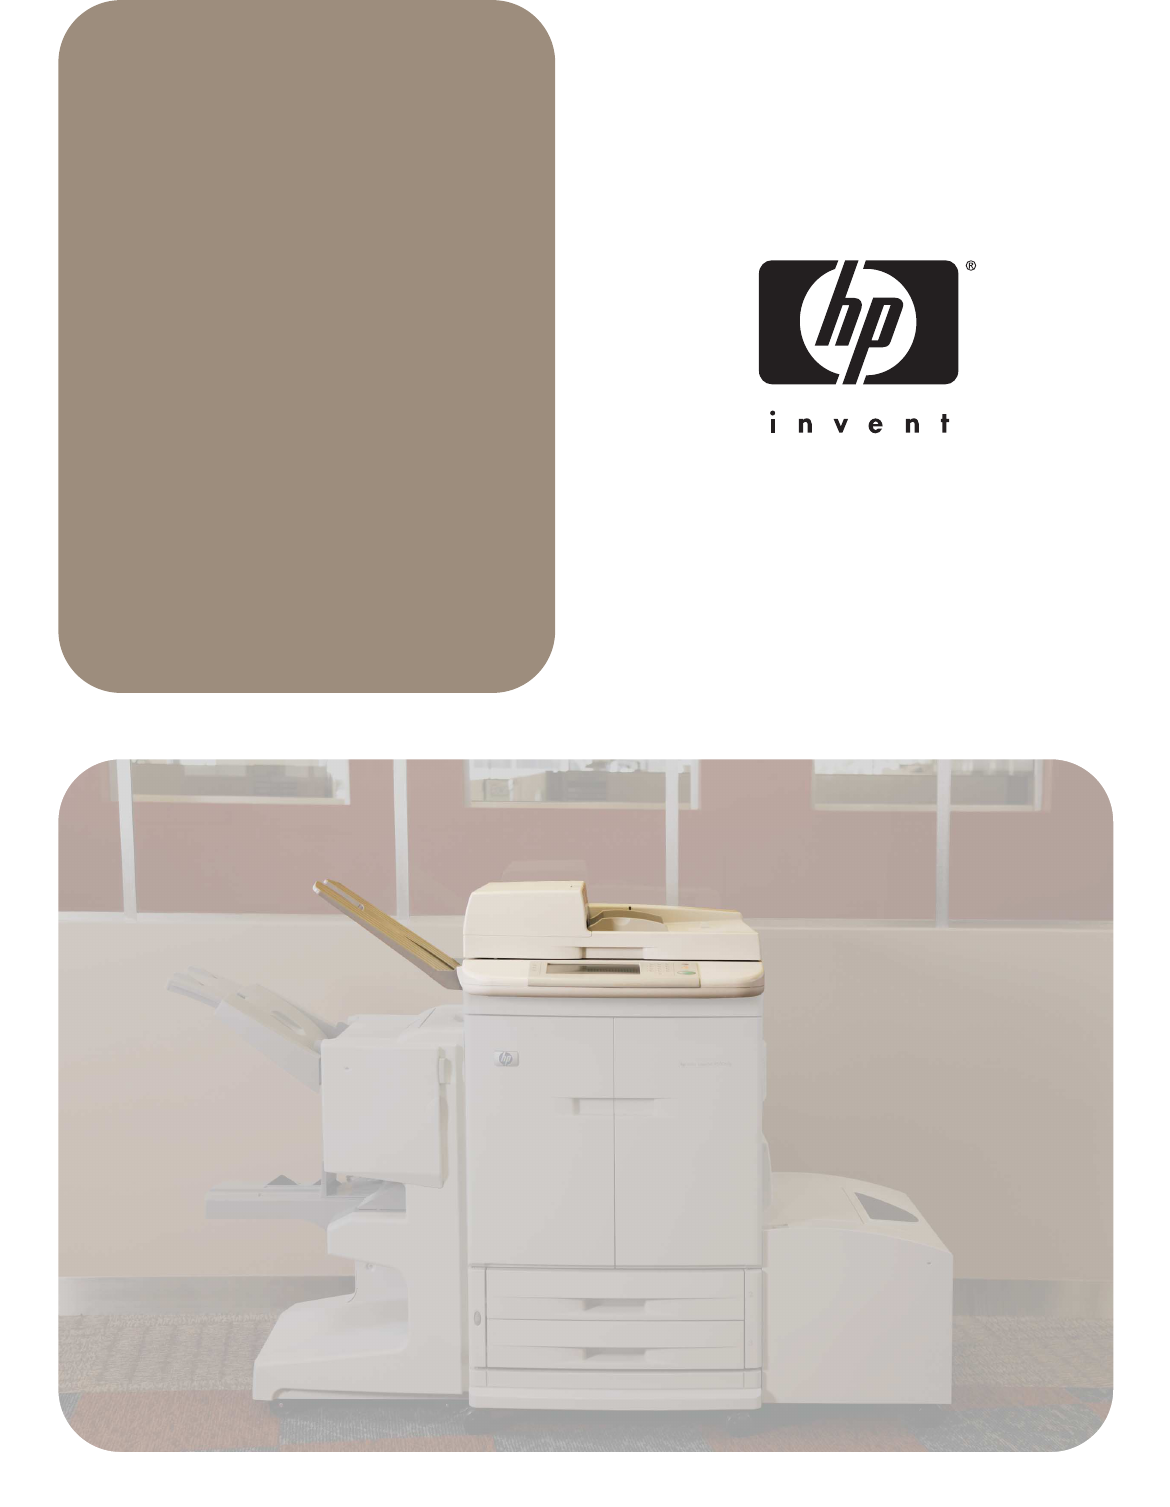 Scanner/ADF service manual for the HP LaserJet  9000mfp/9000Lmfp/9040mfp/9050mfp and 9500mfp